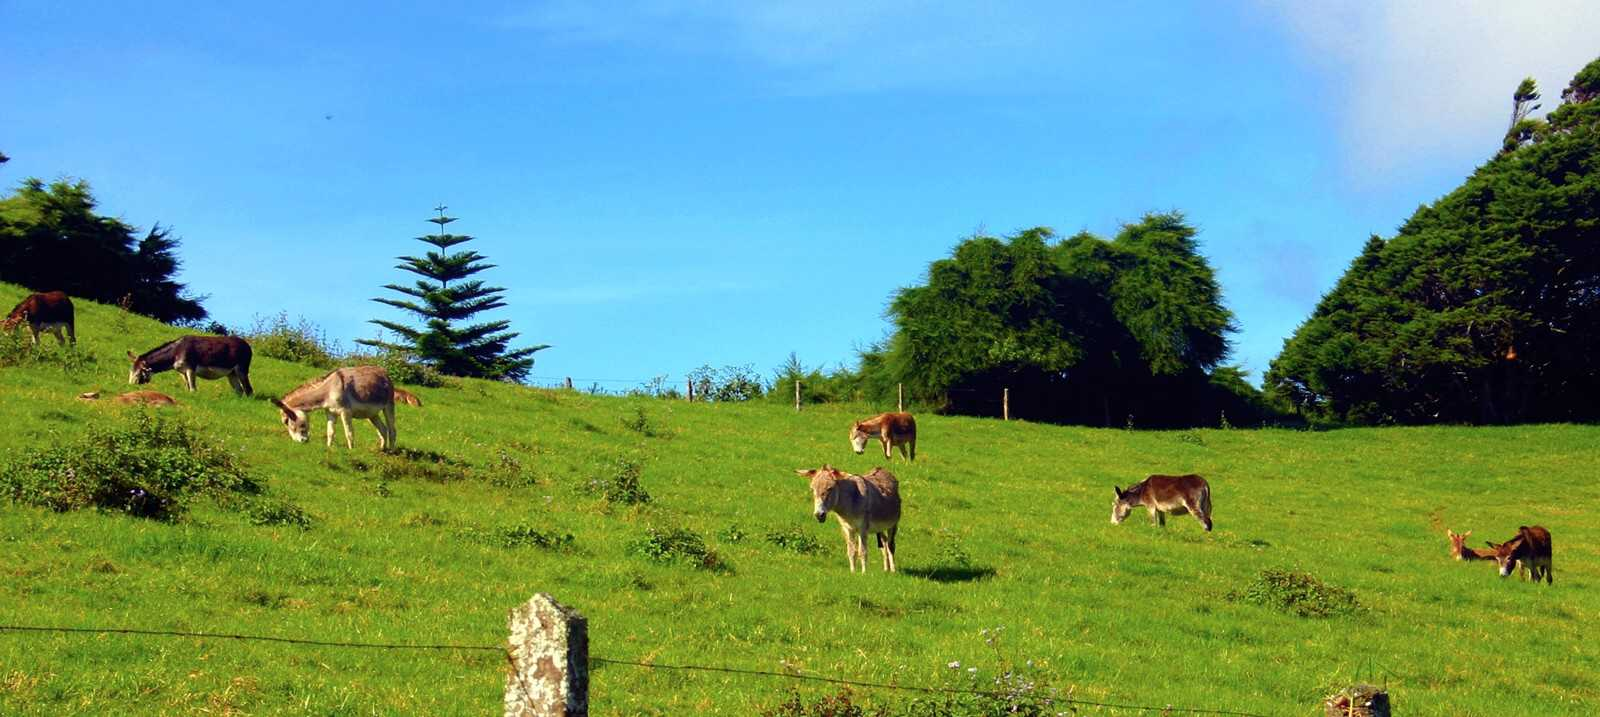 Group of donkeys in the field at Casons Saint Helena Island Info